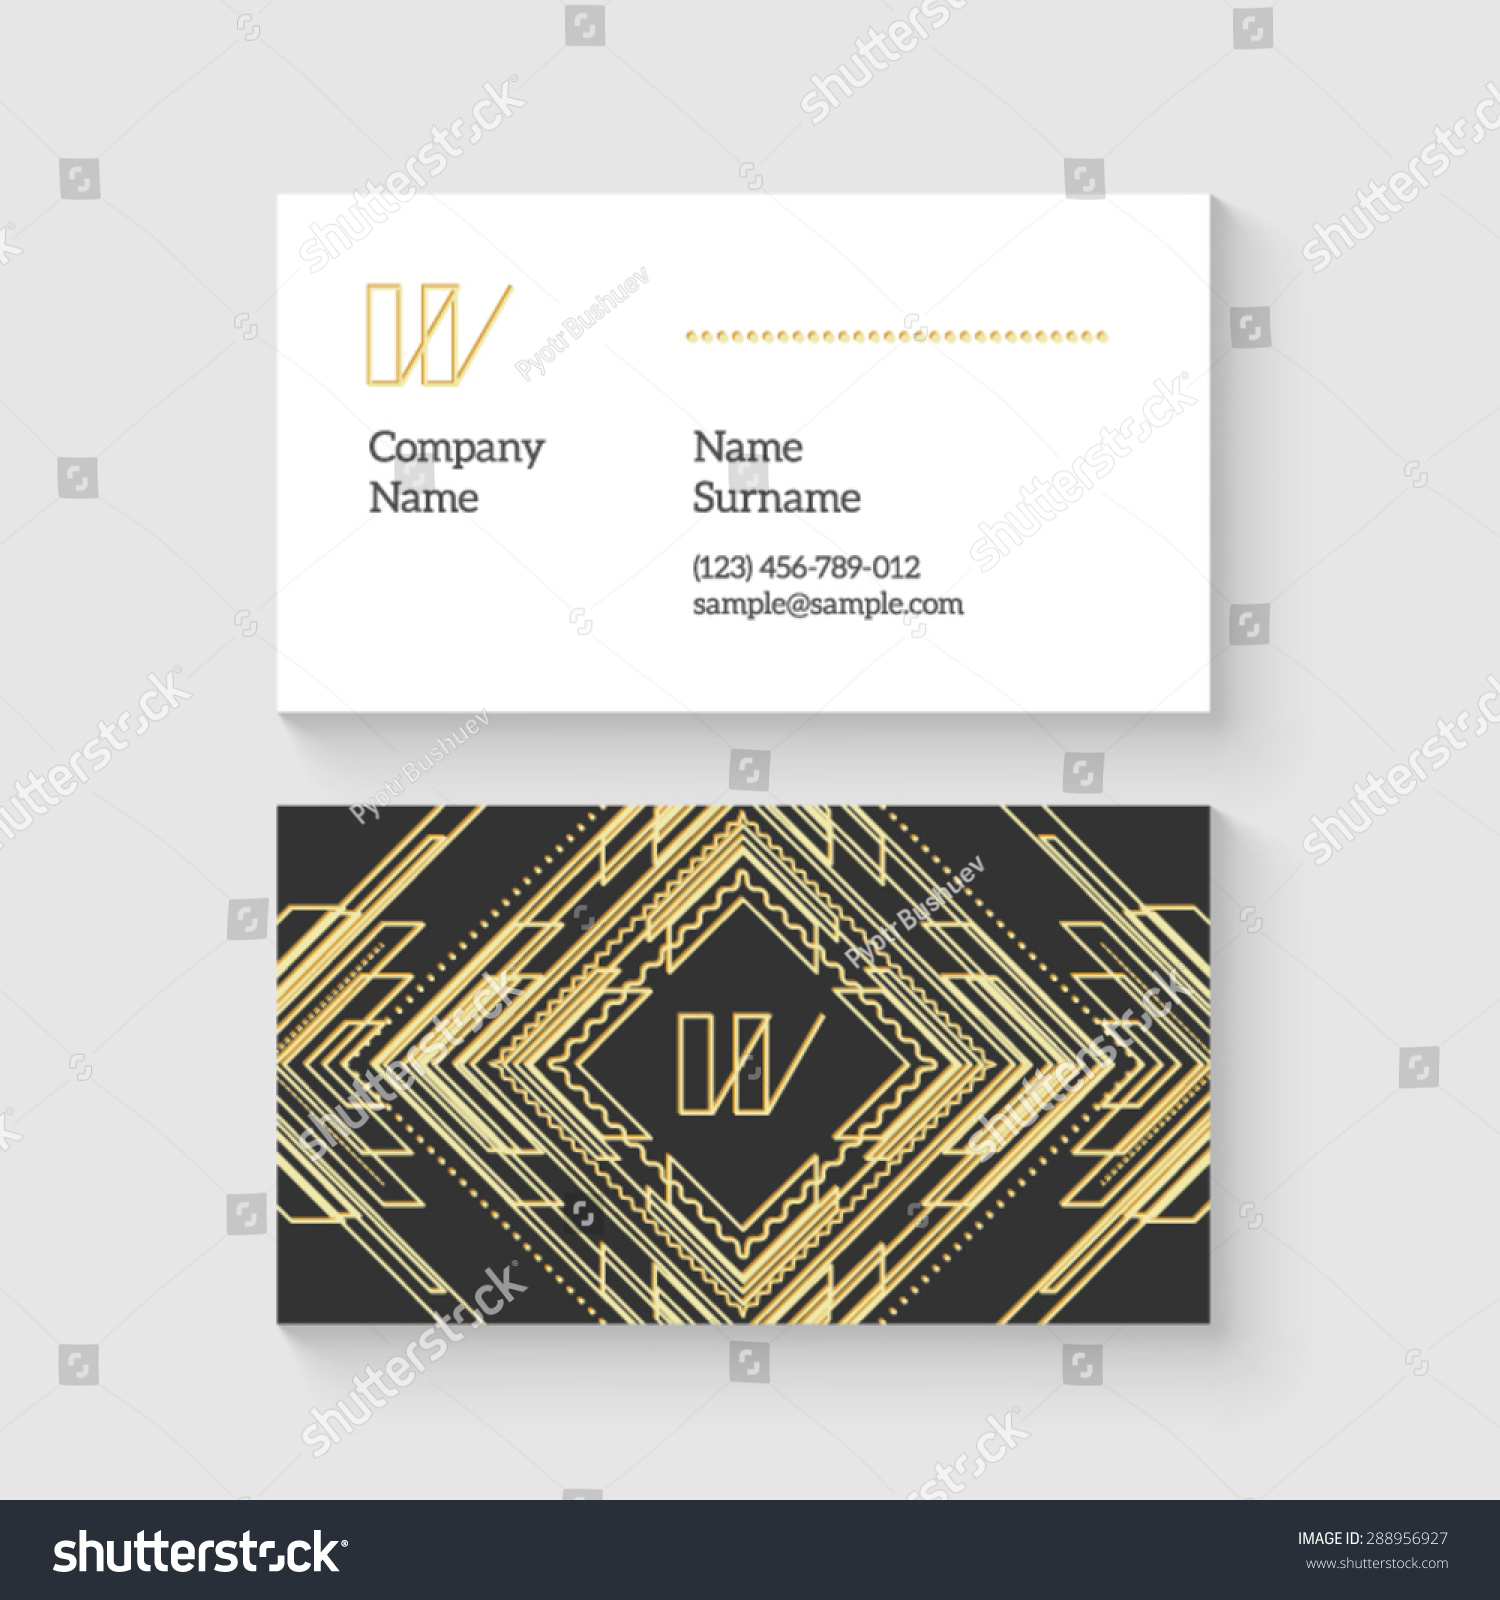 Luxury Art Deco Business Card Gift - Business Card Ideas - etadam.info